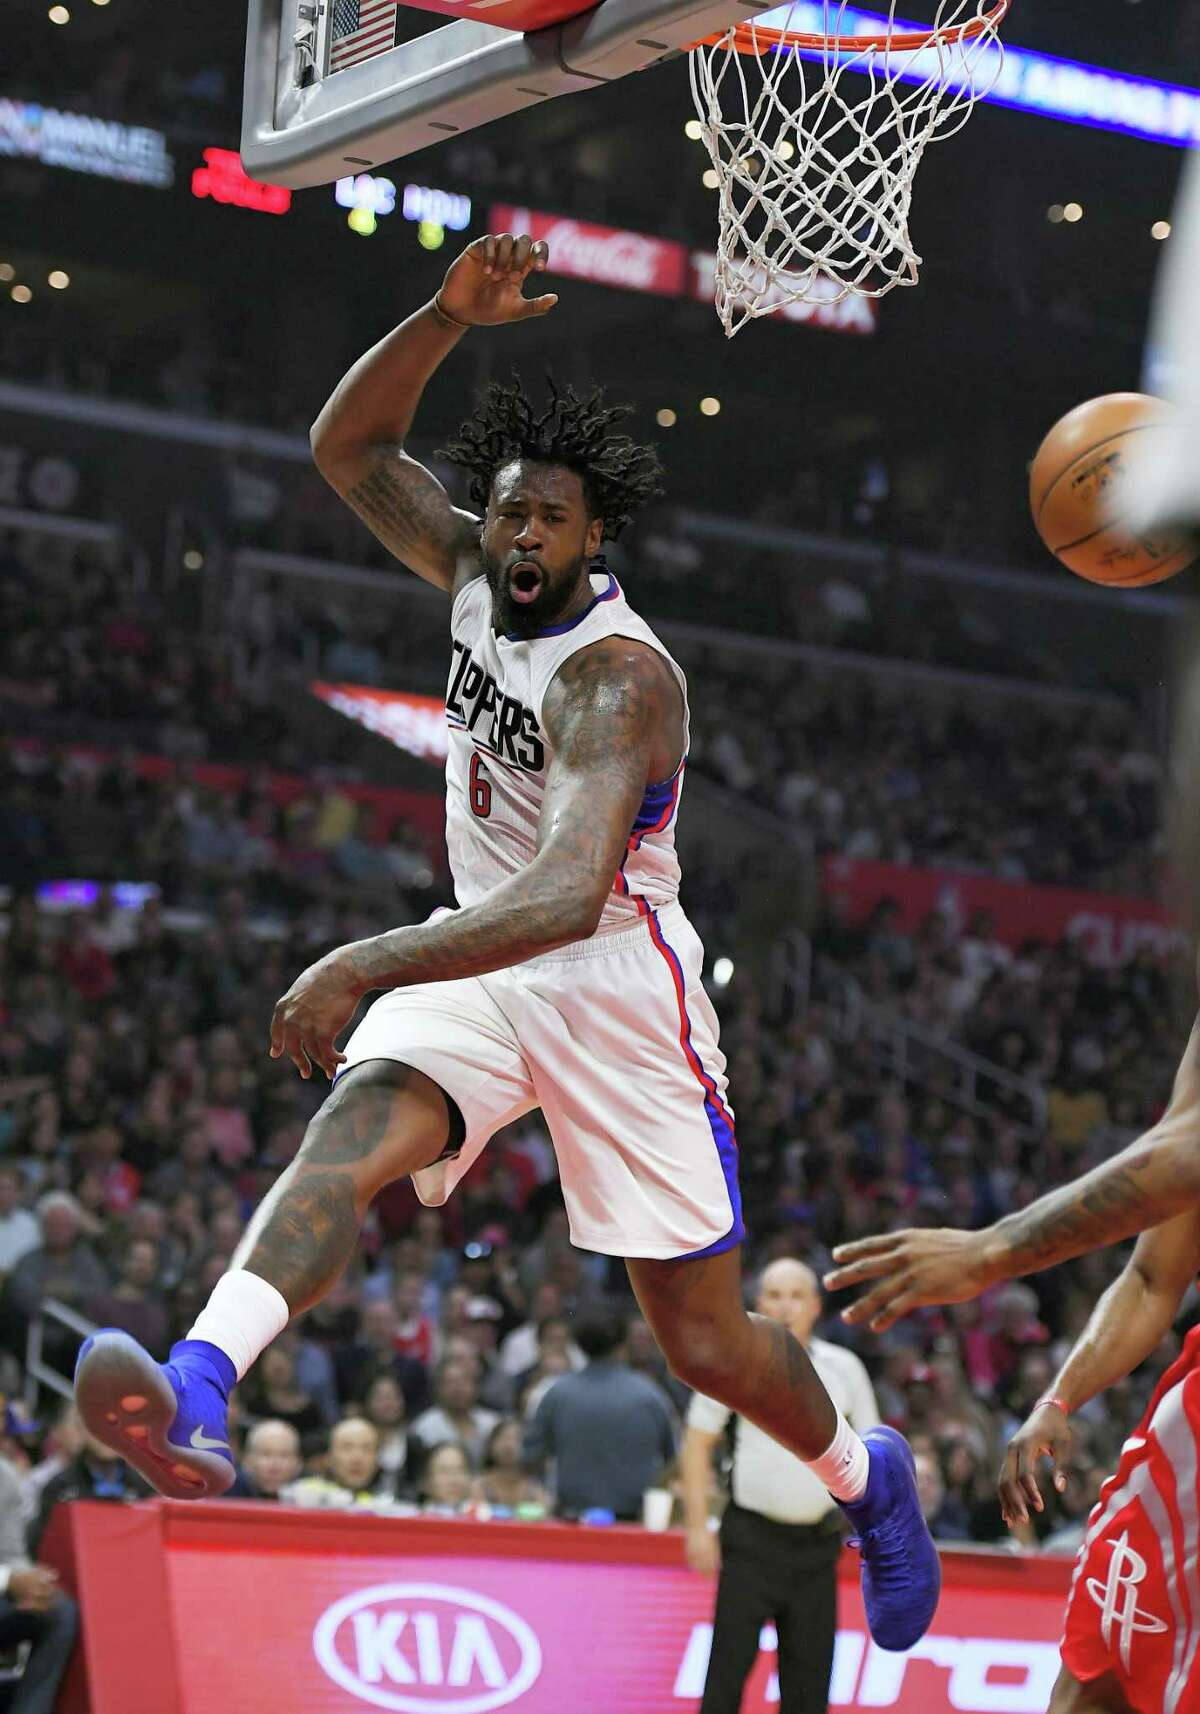 Los Angeles Clippers center DeAndre Jordan loses control of the ball during the first half of an NBA basketball game against the Houston Rockets on April 10, 2017 in Los Angeles.